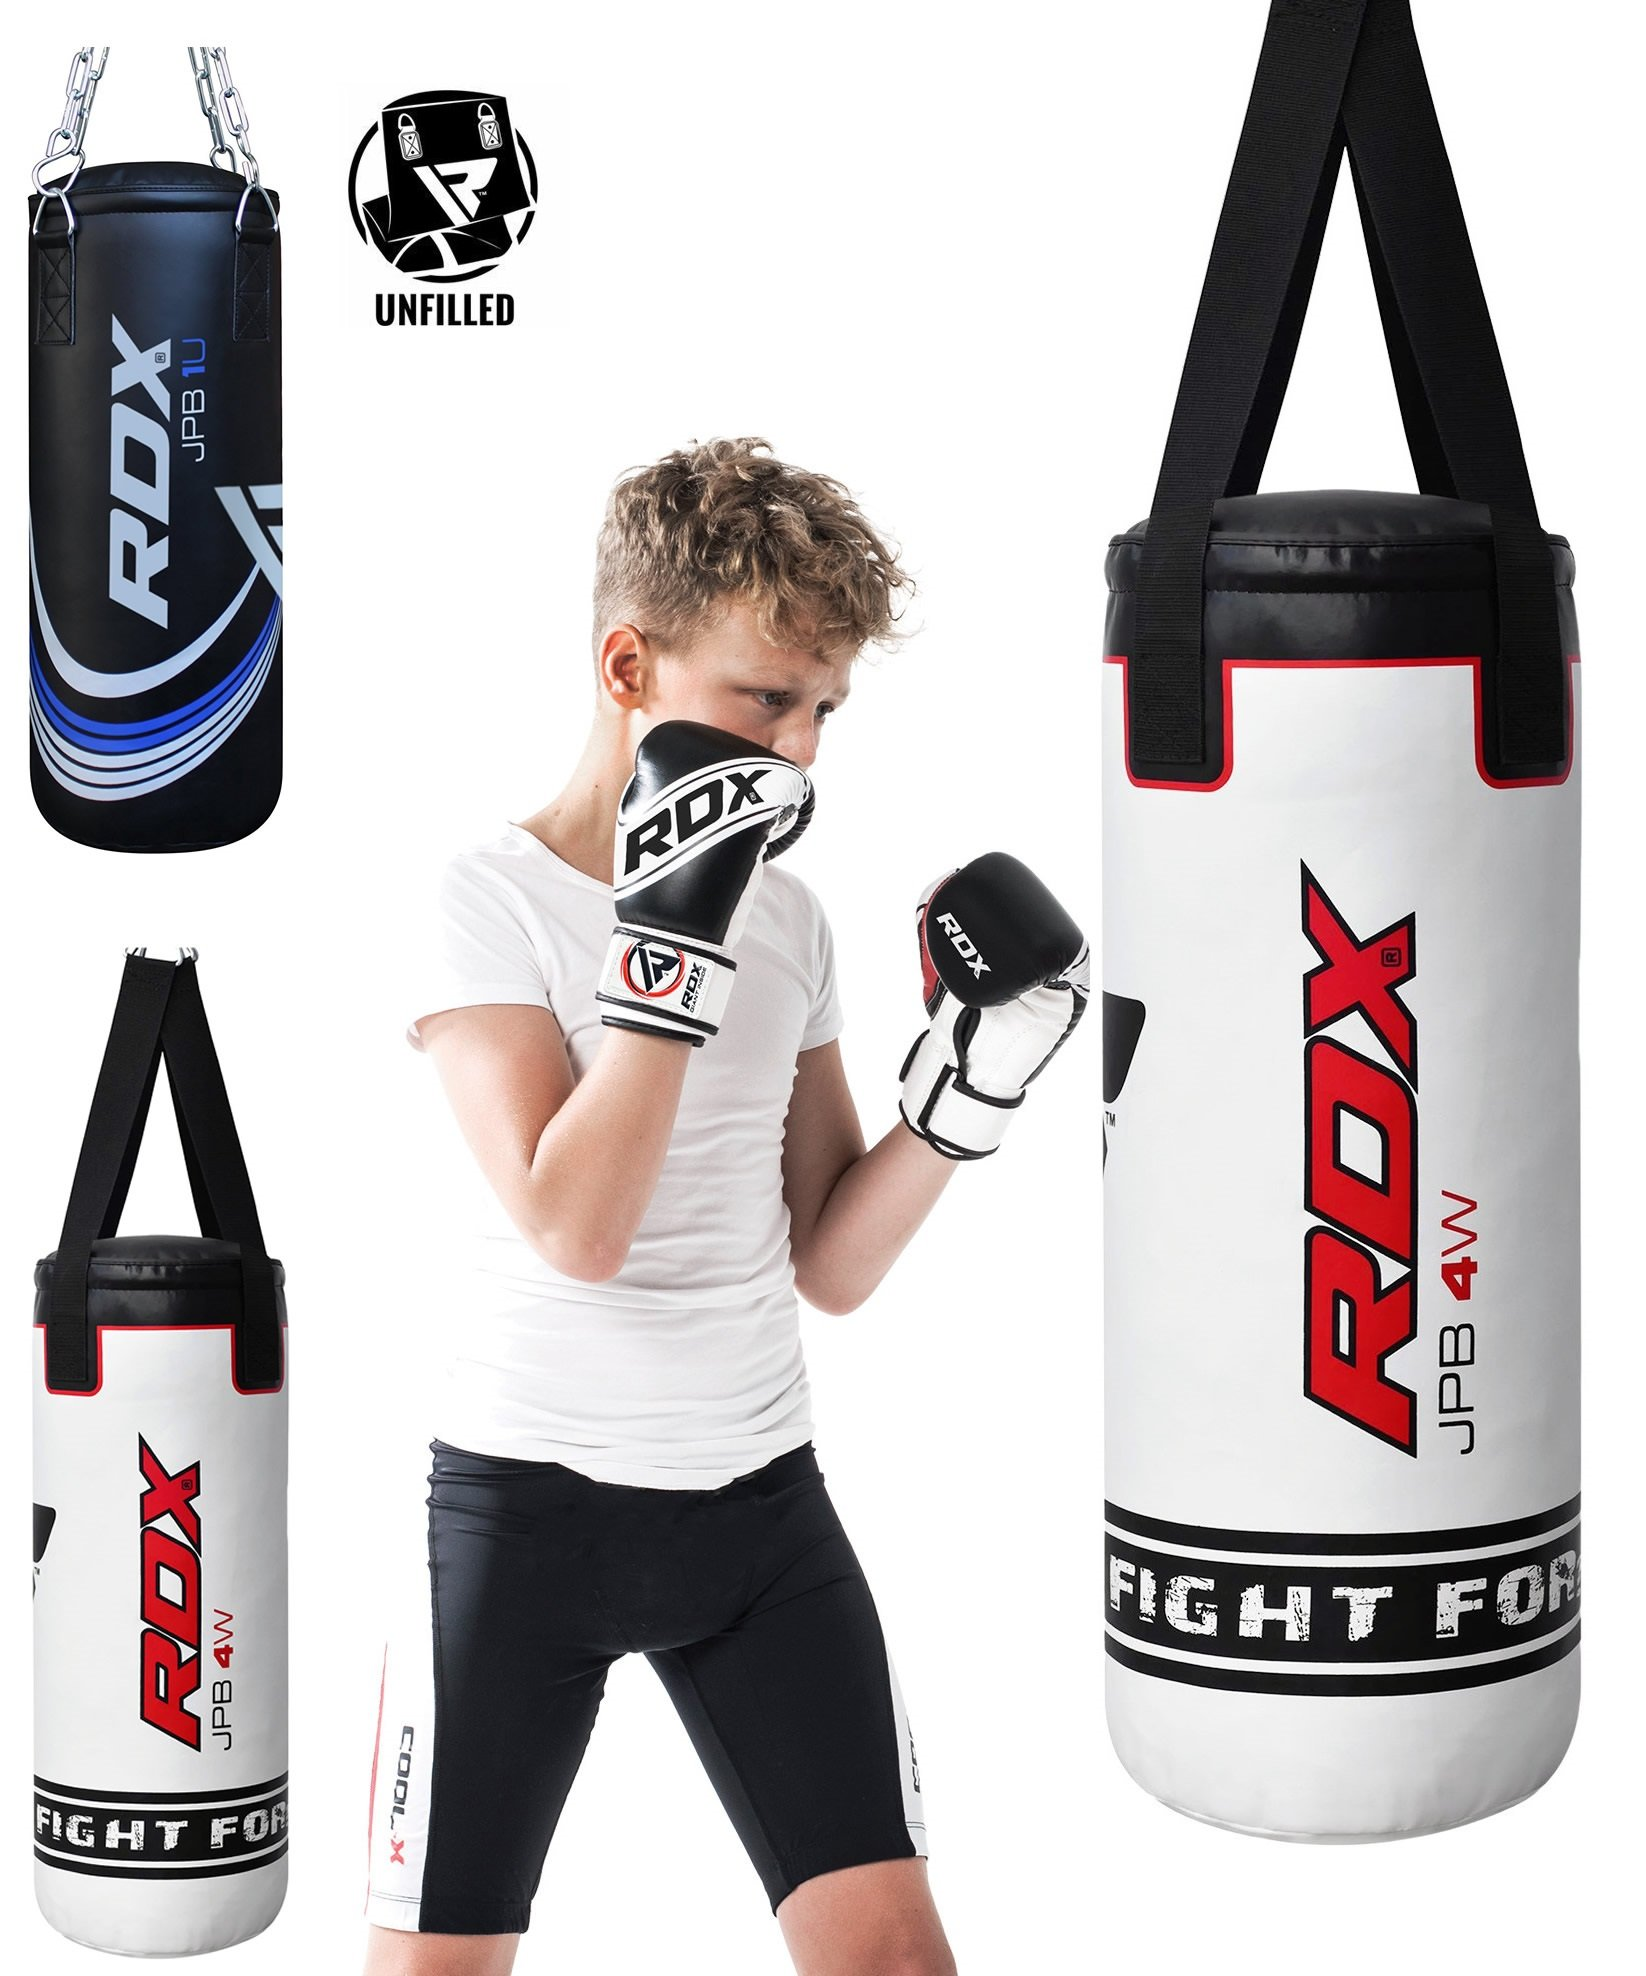 RDX Kids Heavy Boxing 2FT Punching Bag UNFILLED MMA Punching Training Gloves Kickboxing by RDX